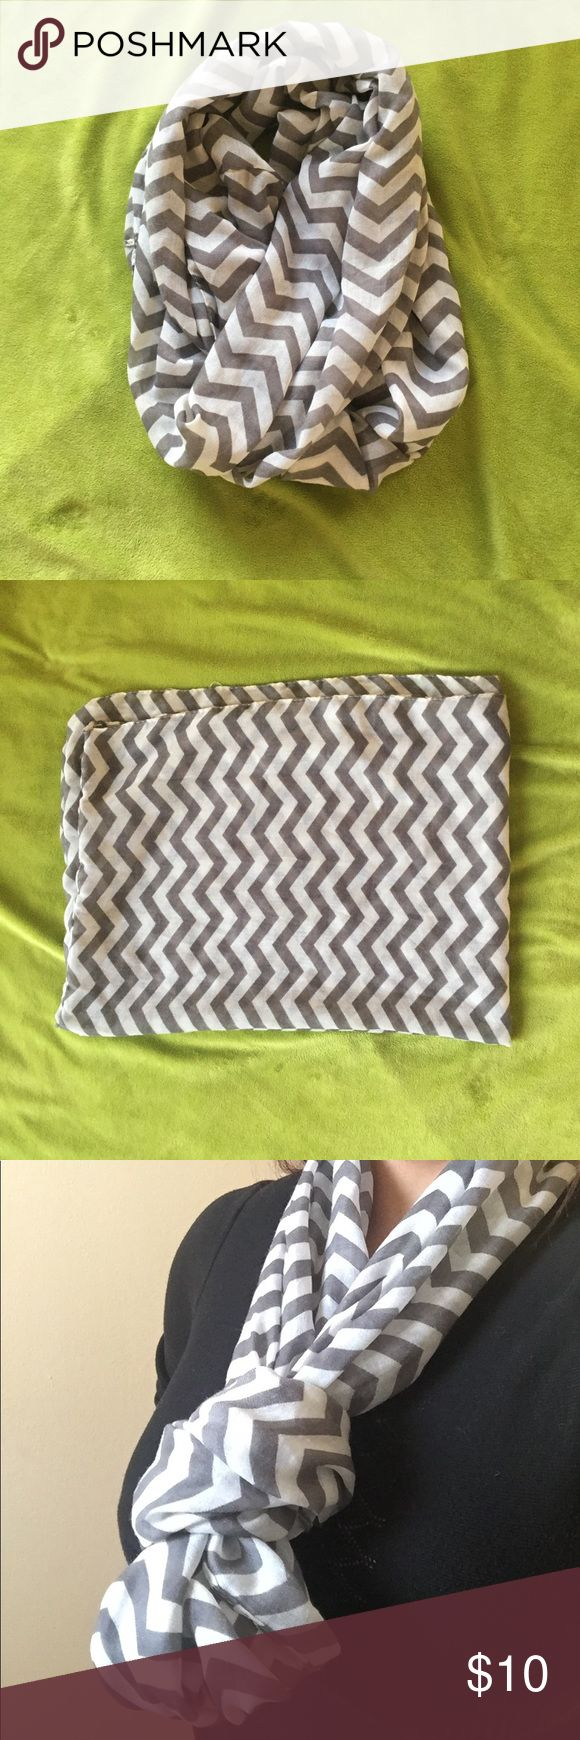 White and gray Chevron infinity scarf Soft and versatile infinity scarf in a classic chevron pattern makes a great gift. Great condition - no stains. Accessories Scarves & Wraps